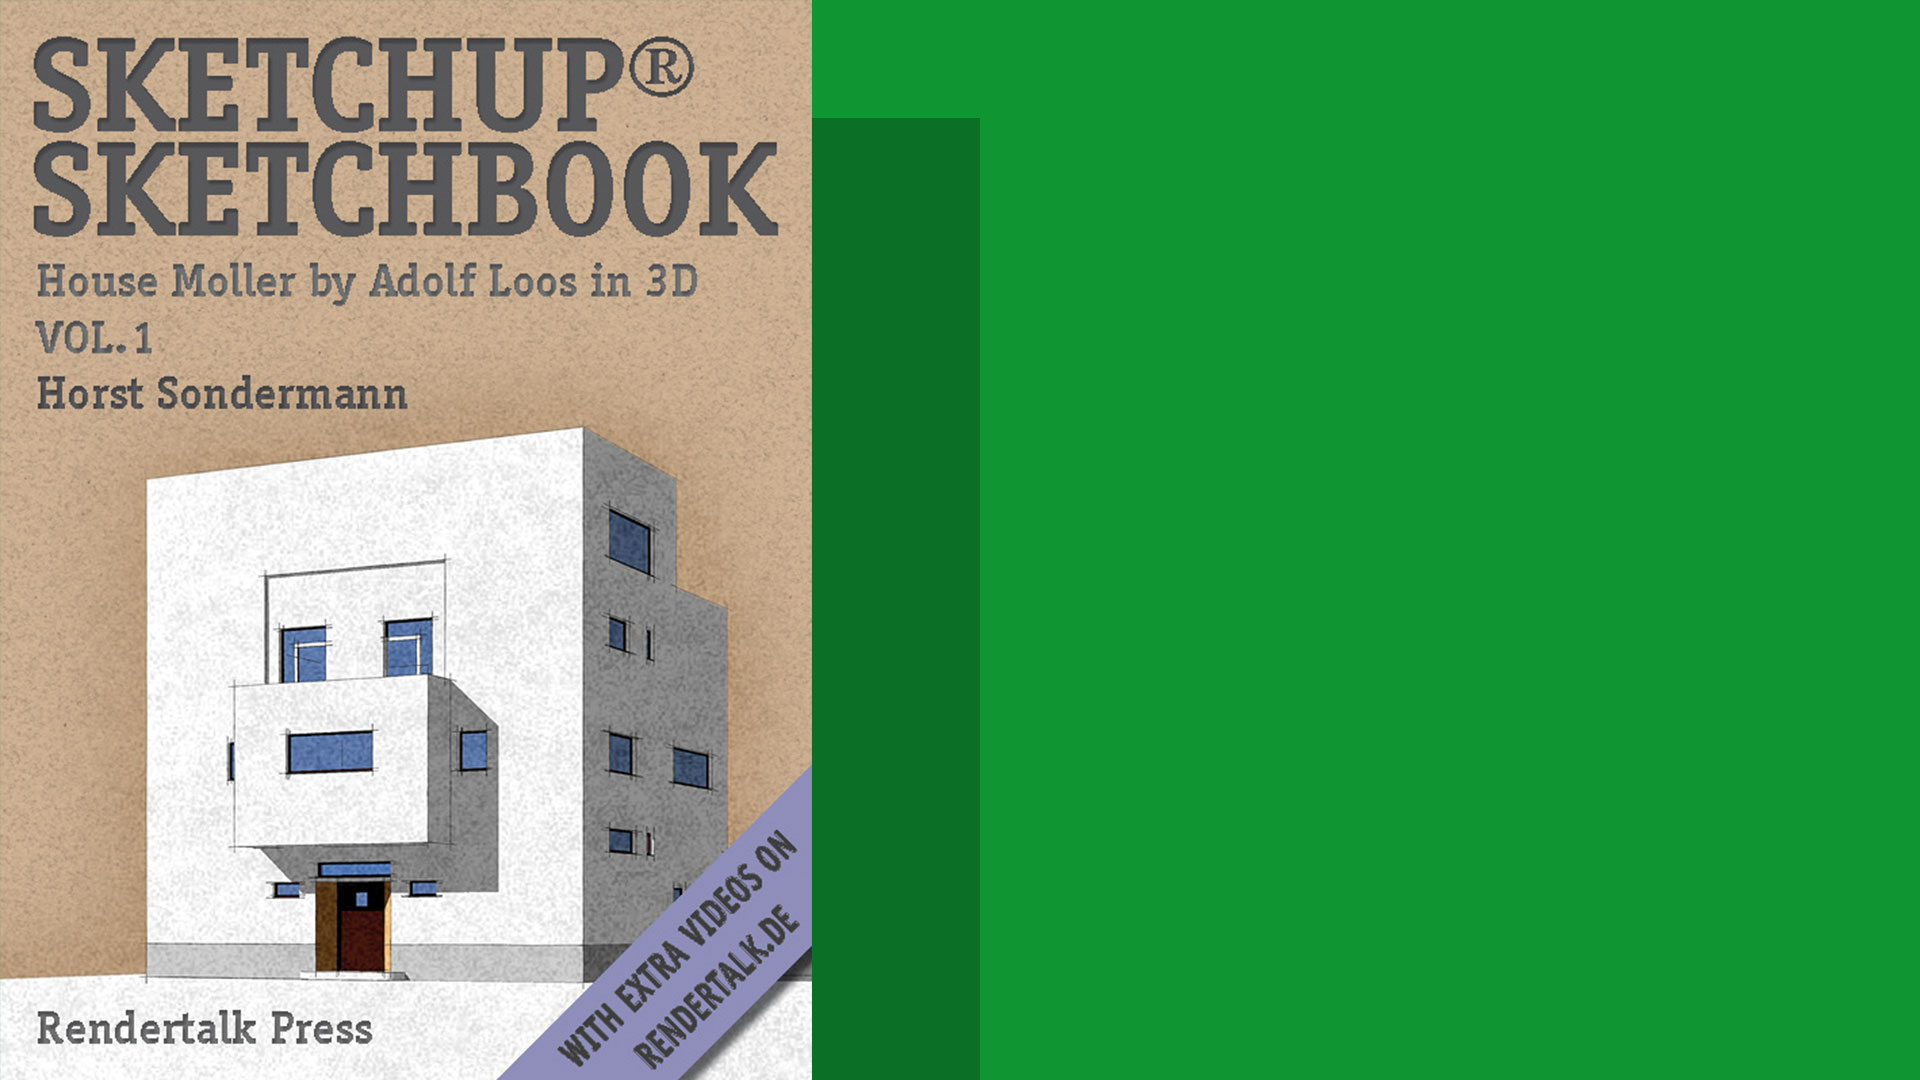 Horst Sondermann SketchUp Sketchbook Vol 1 Architektur Modell Ebook amazon english 2011